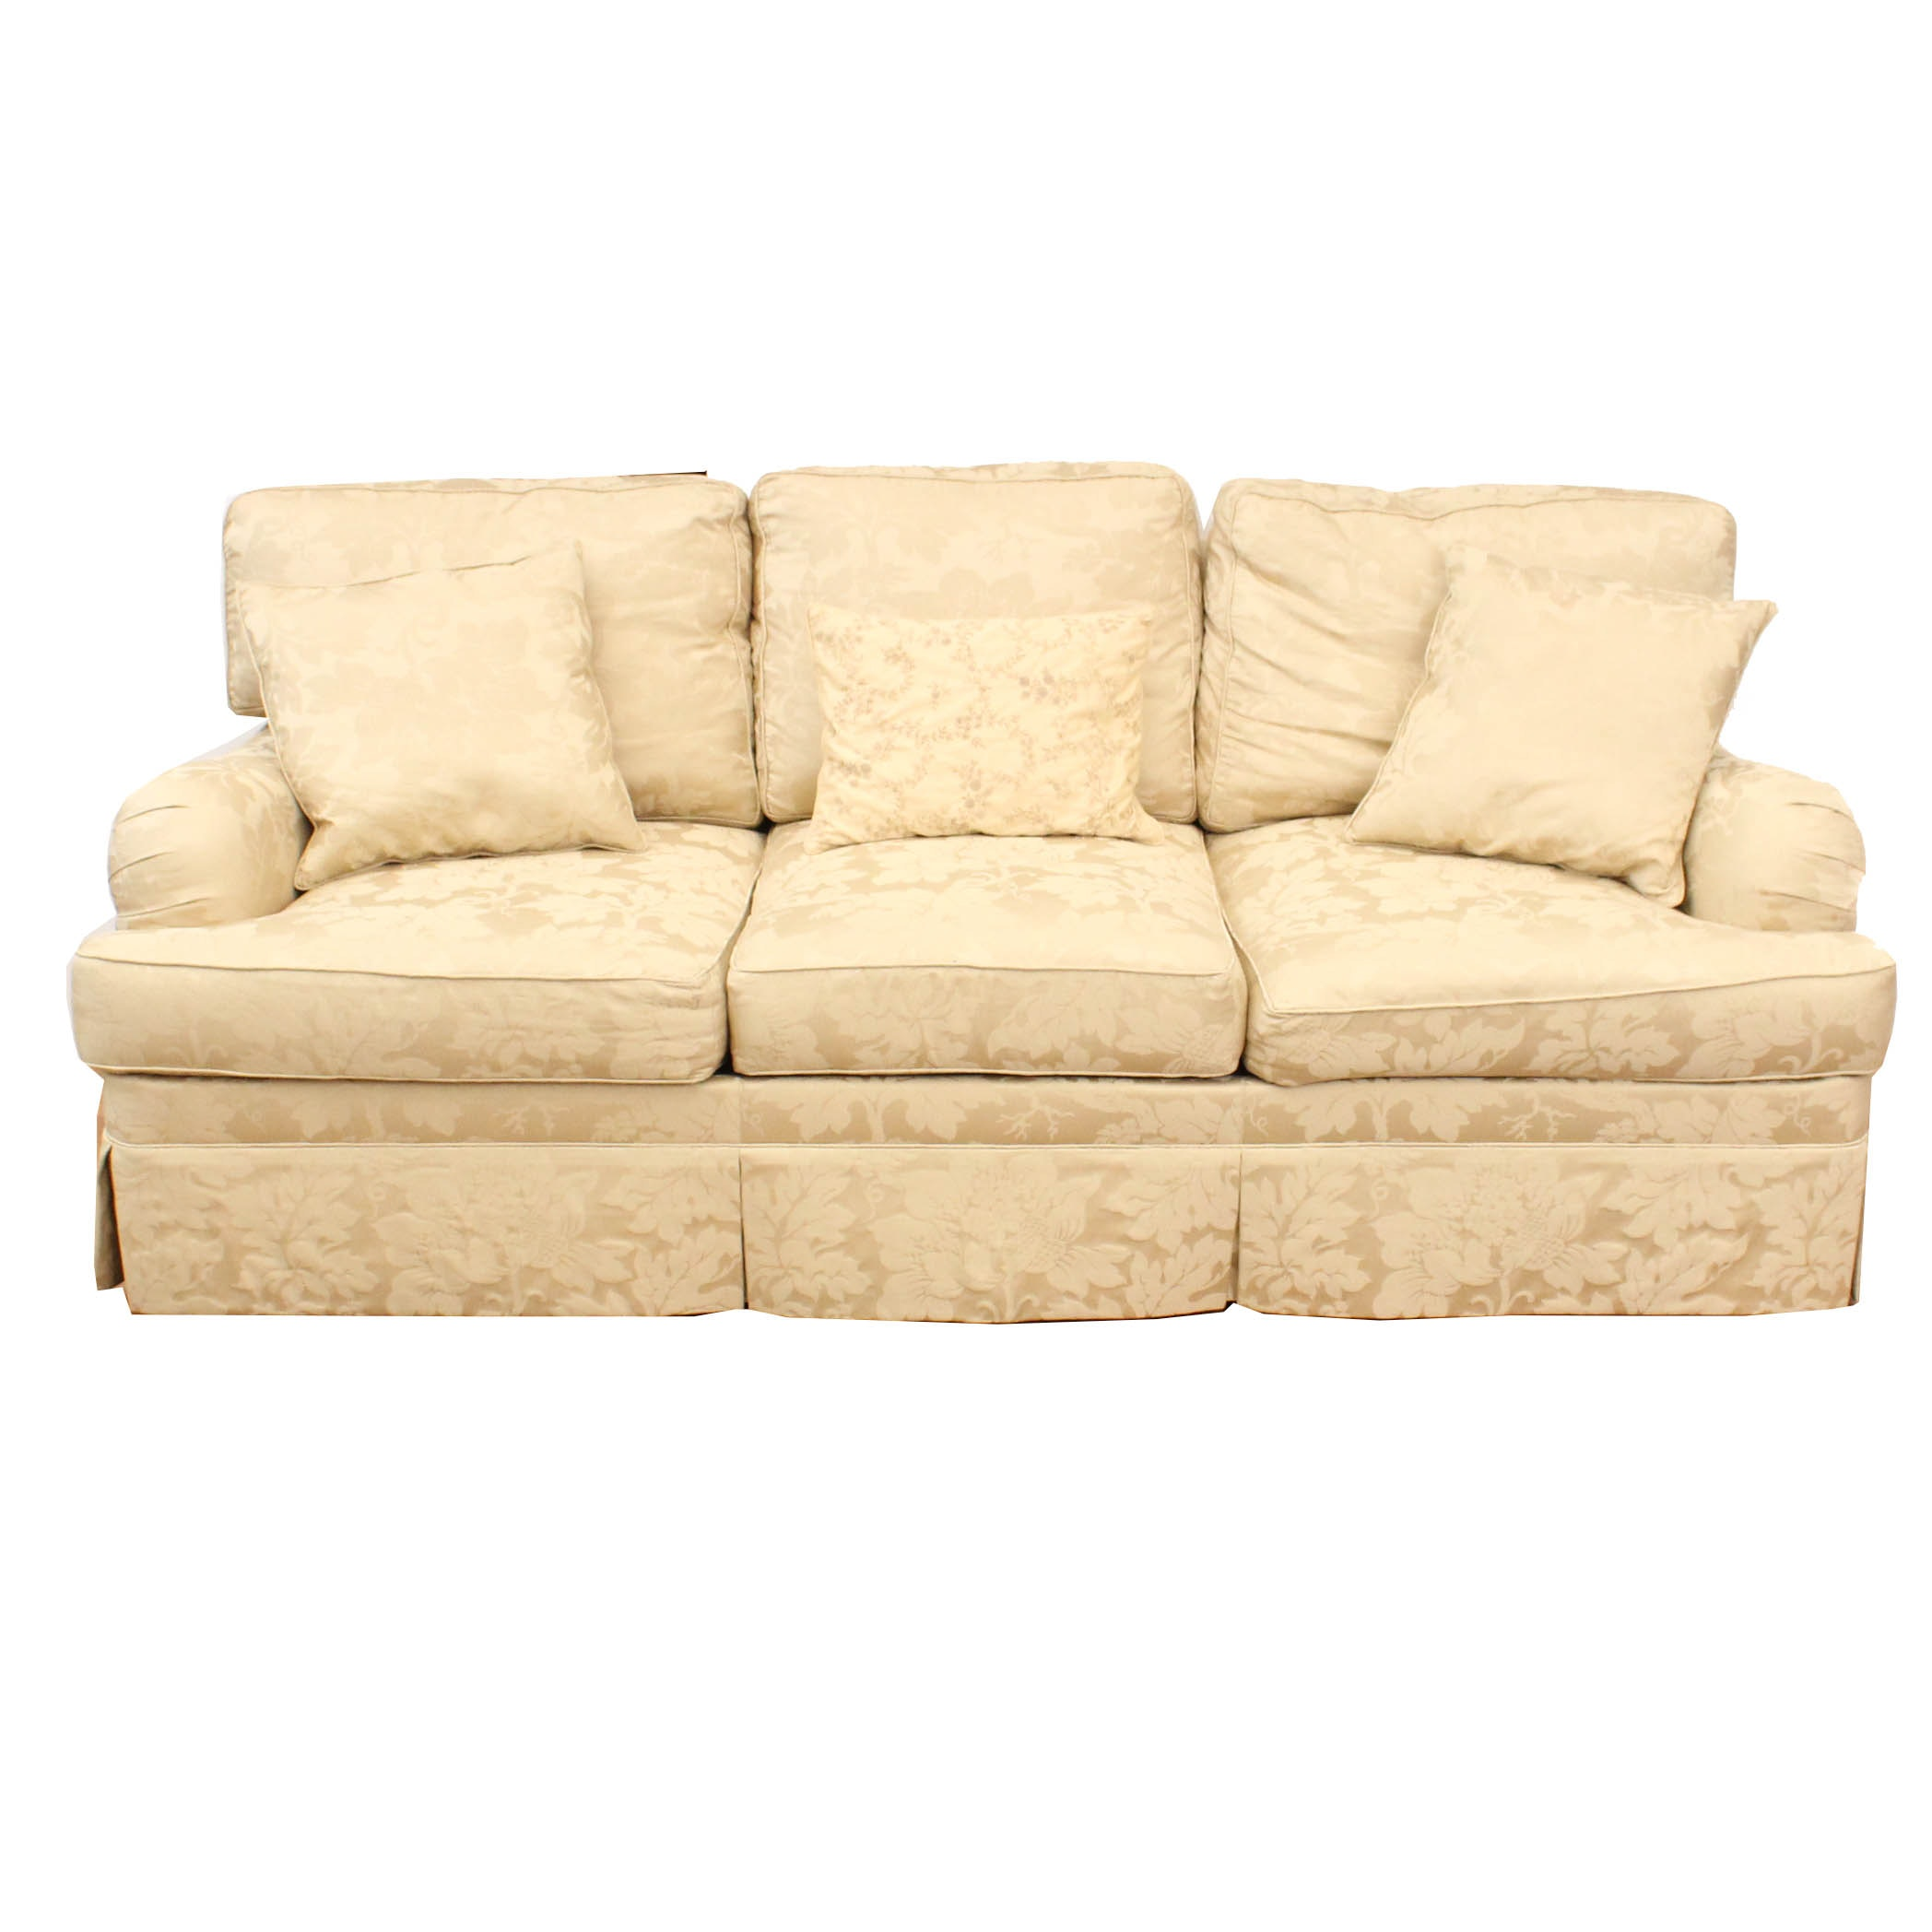 Down Filled Sofa By Hickory Chair Furniture Company ...